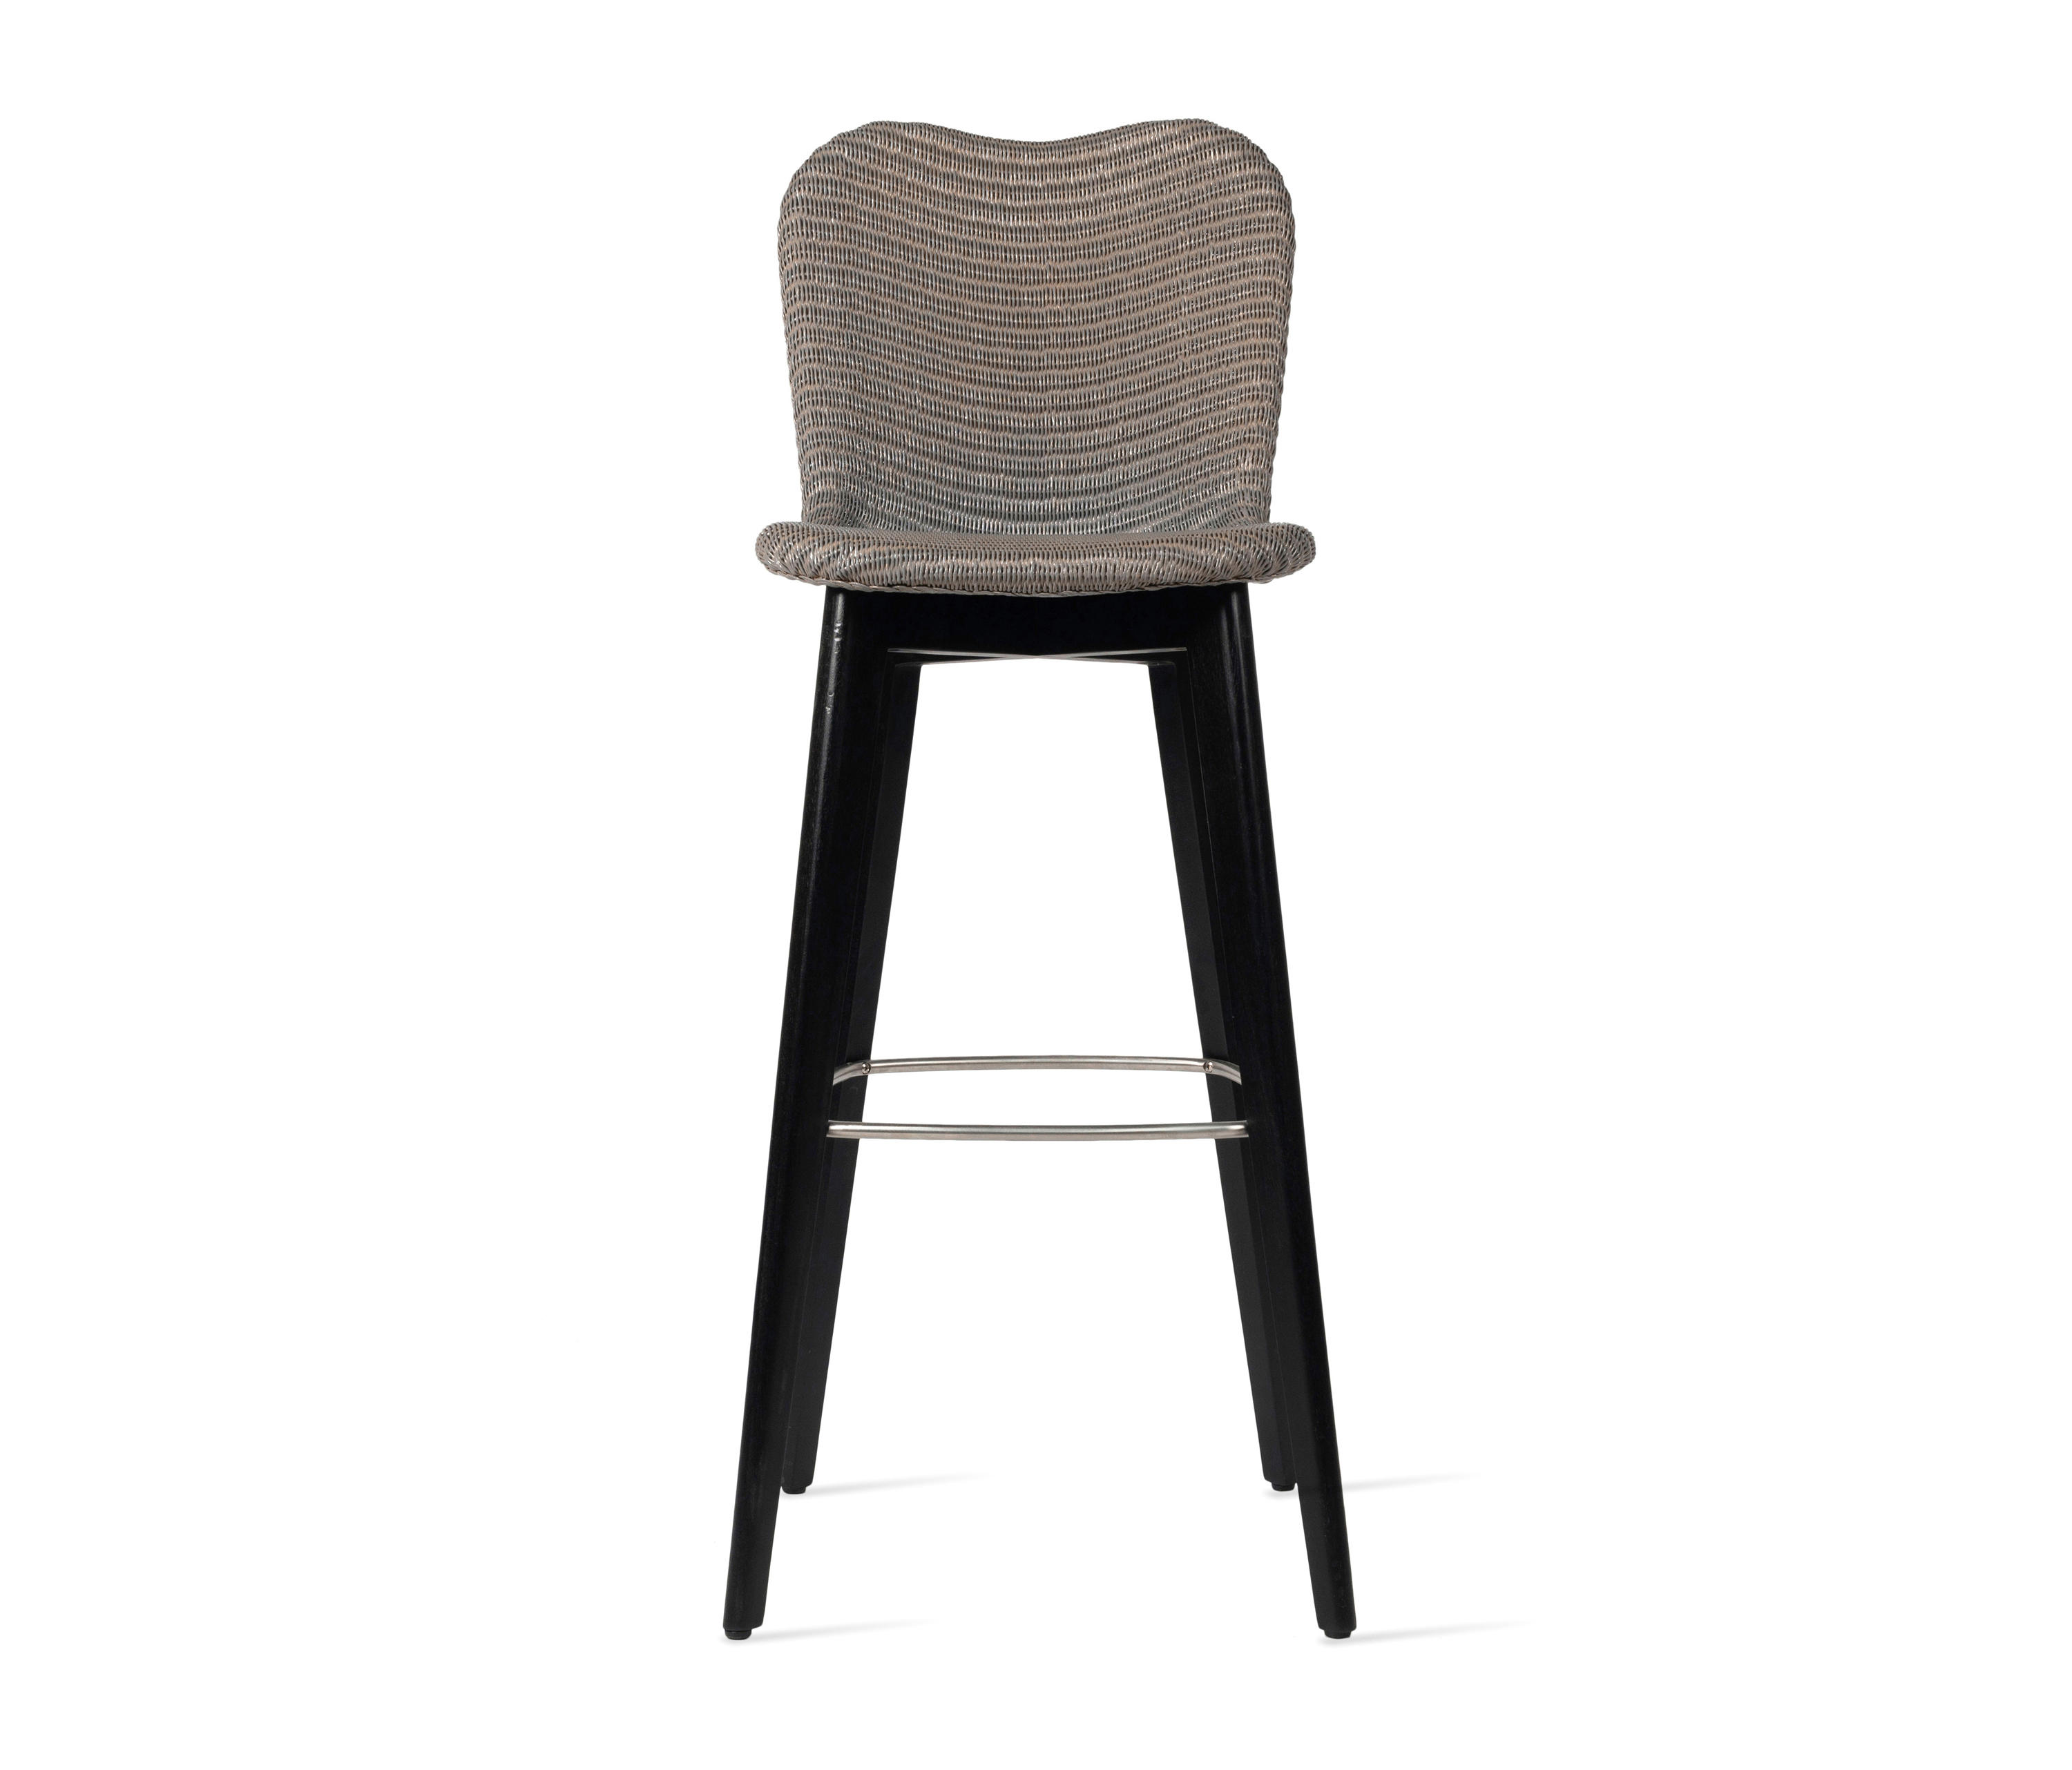 Strange Lily Bar Stool Black Wood Base Architonic Pabps2019 Chair Design Images Pabps2019Com